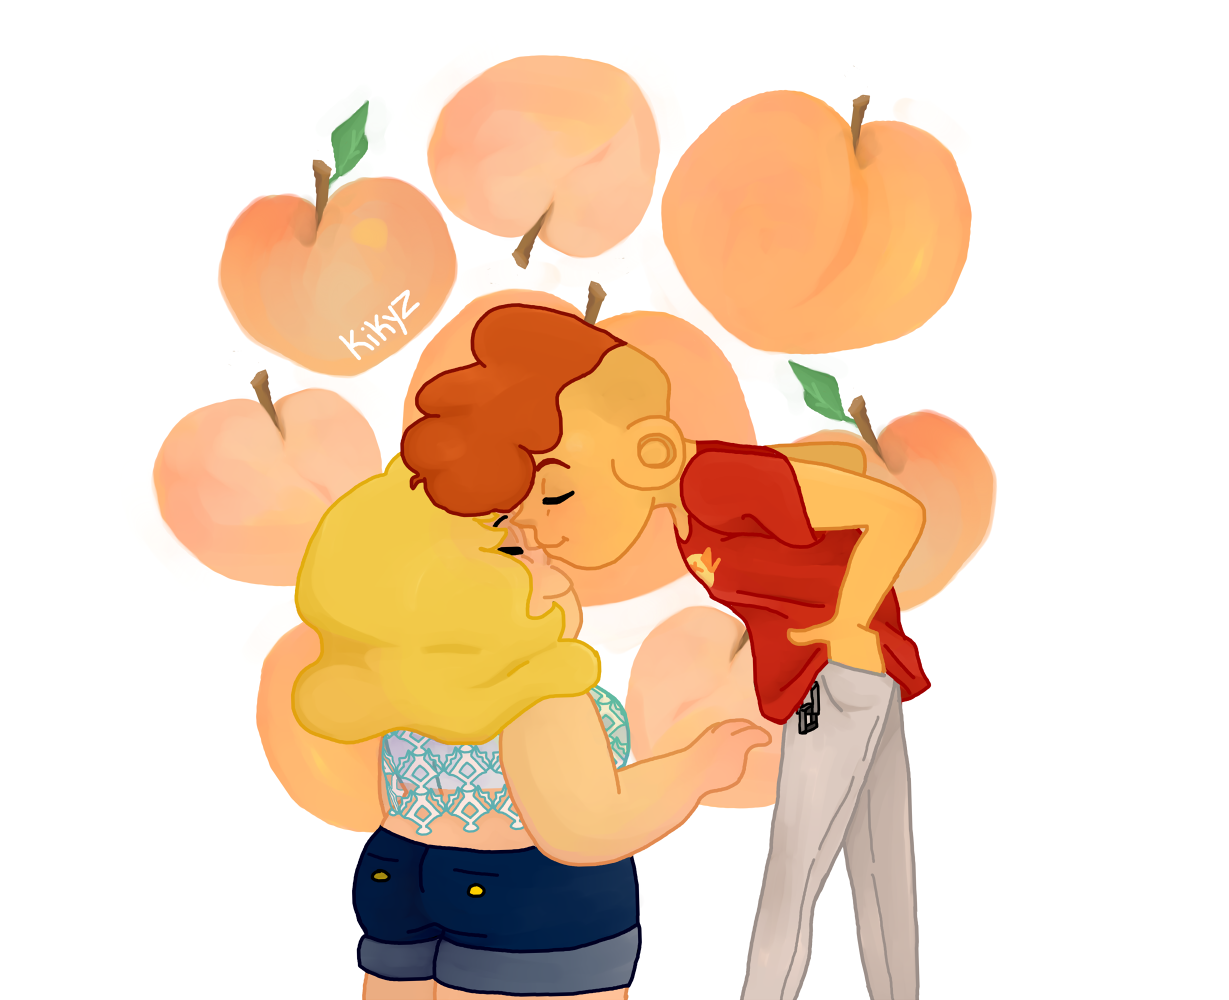 """""""And if I had my little way, I'd eat peaches everyday! """" lol i dunno. semi inspired by my fic but eh. i've eaten a lot of peaches this summer"""